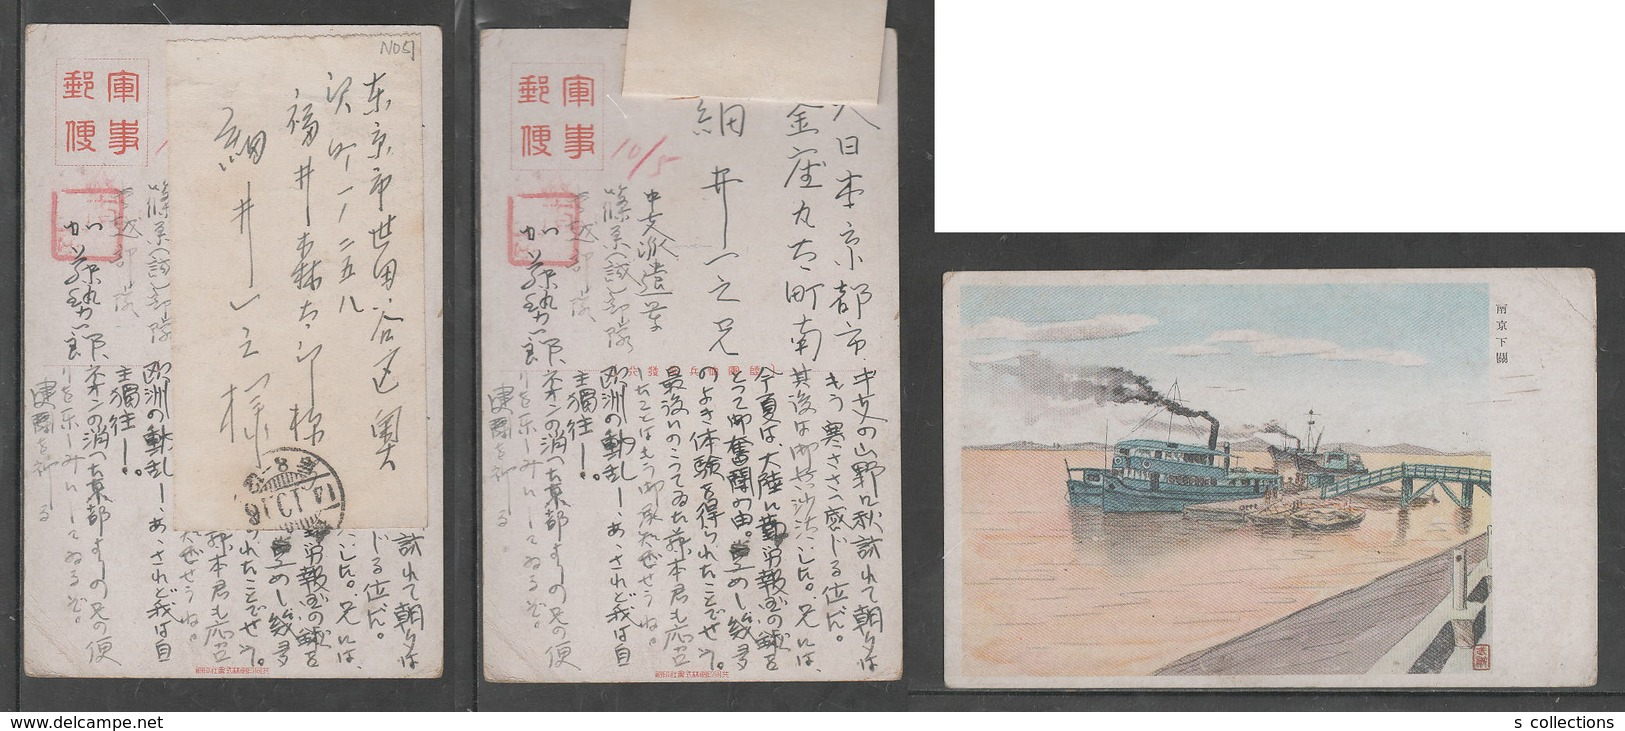 JAPAN WWII Military Nanjing Xiaguan Picture Postcard CANTRAL CHINA Liaoyang CHINE To JAPON GIAPPONE - 1943-45 Shanghai & Nanjing